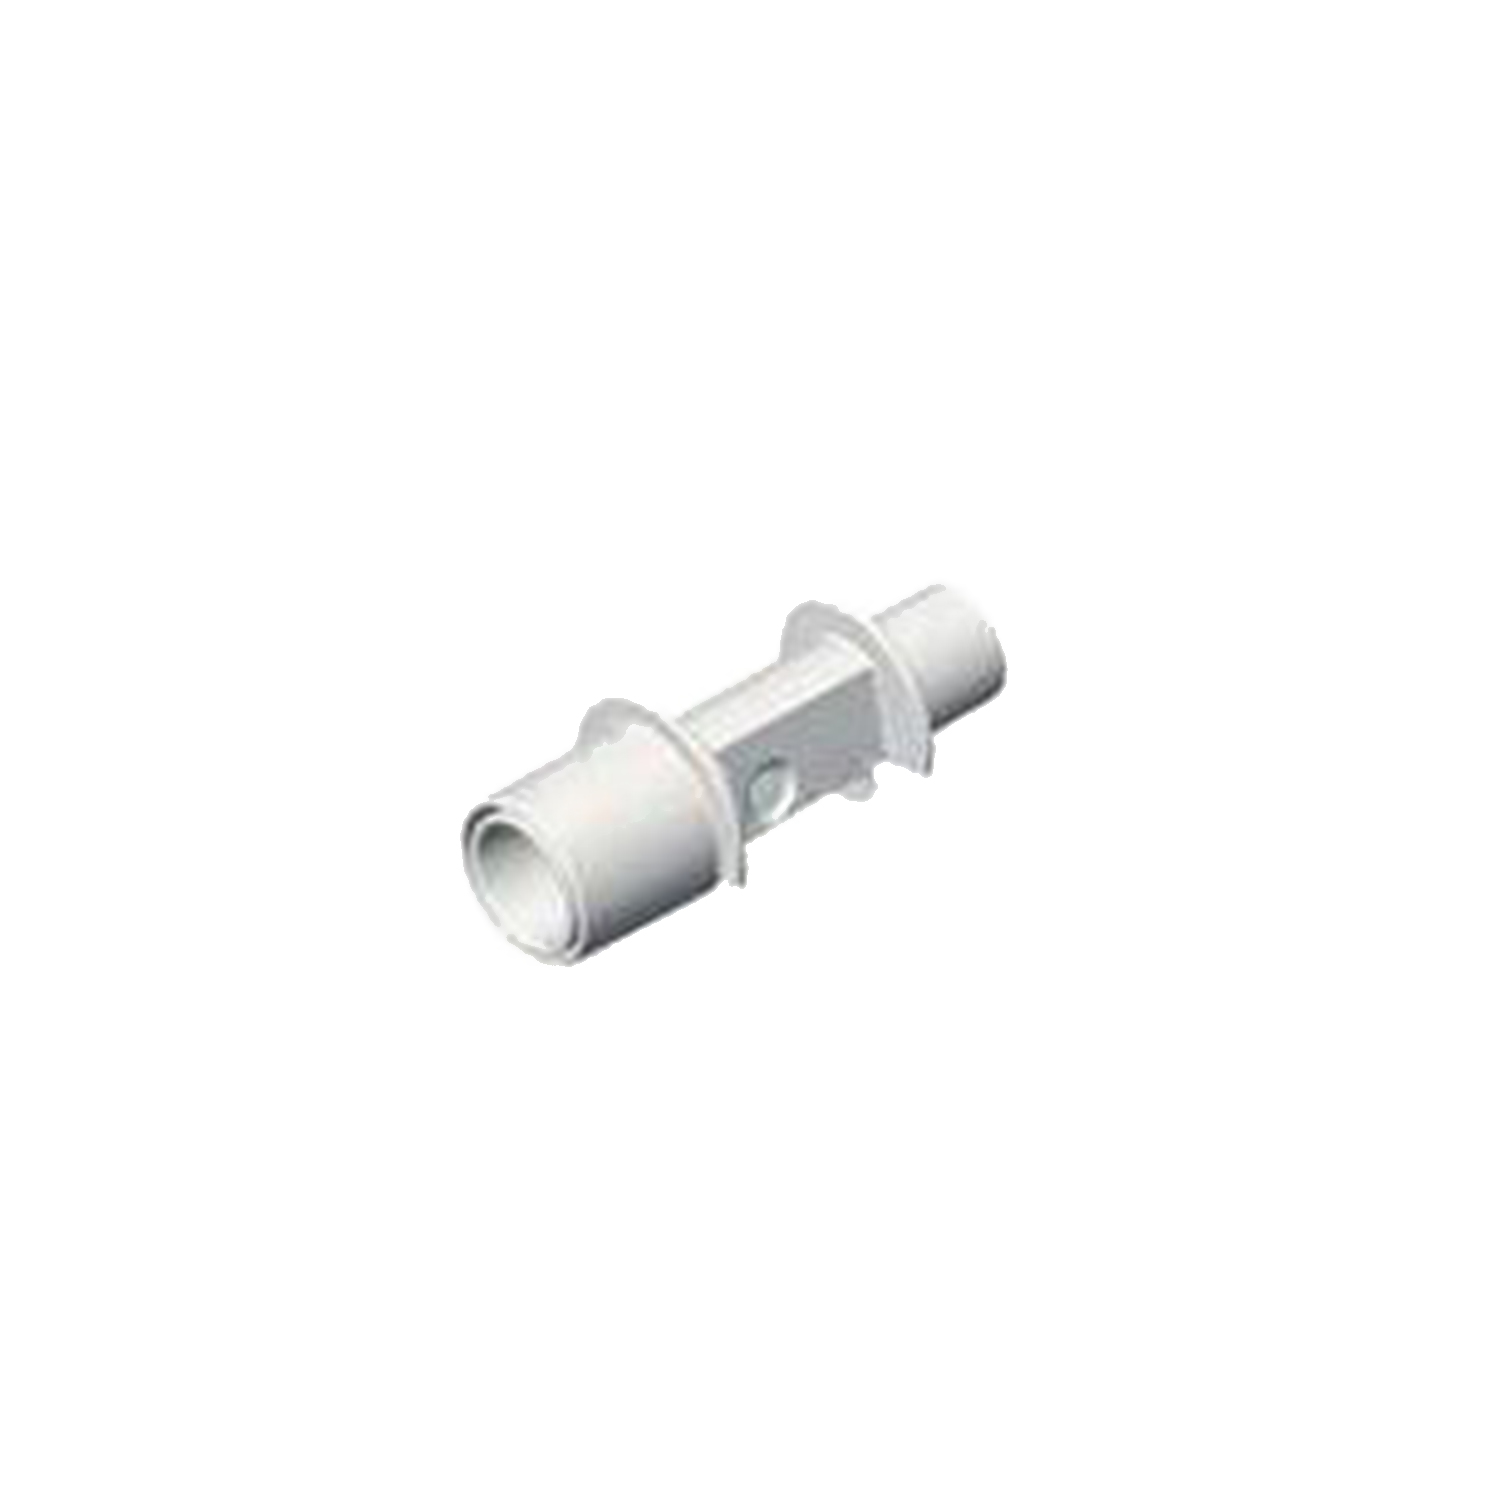 Adult/Pediatric Airway Adapter for use with Masimo EMMA Capnometer